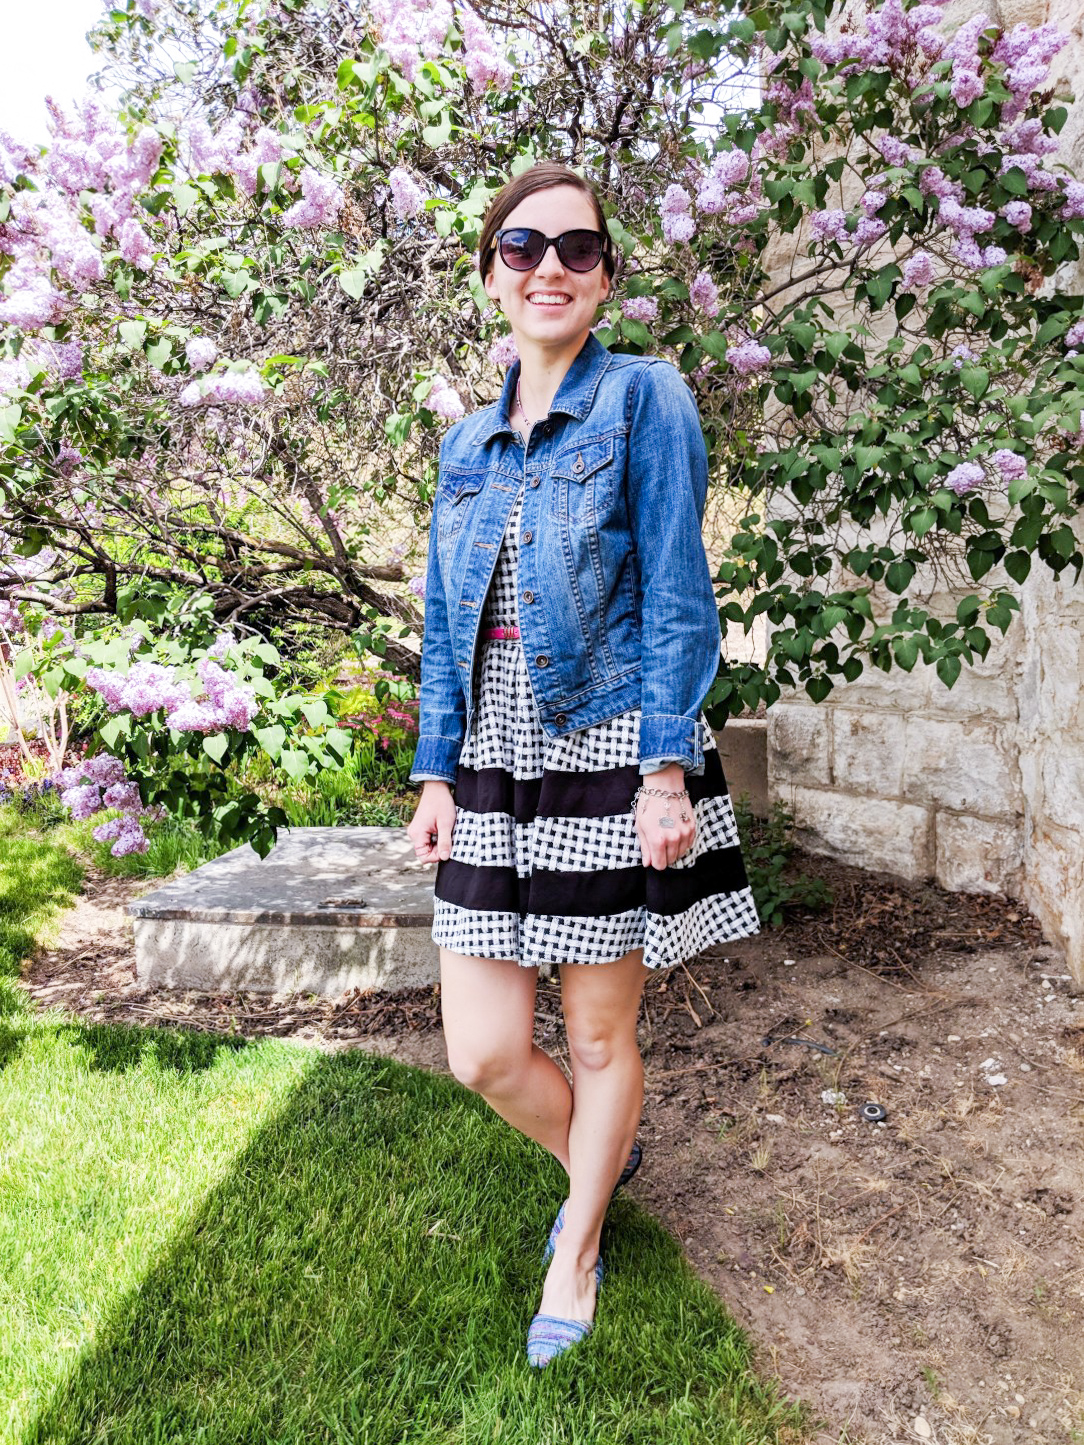 gingham dress, jean jacket, denim flats, spring outfit, Easter dress